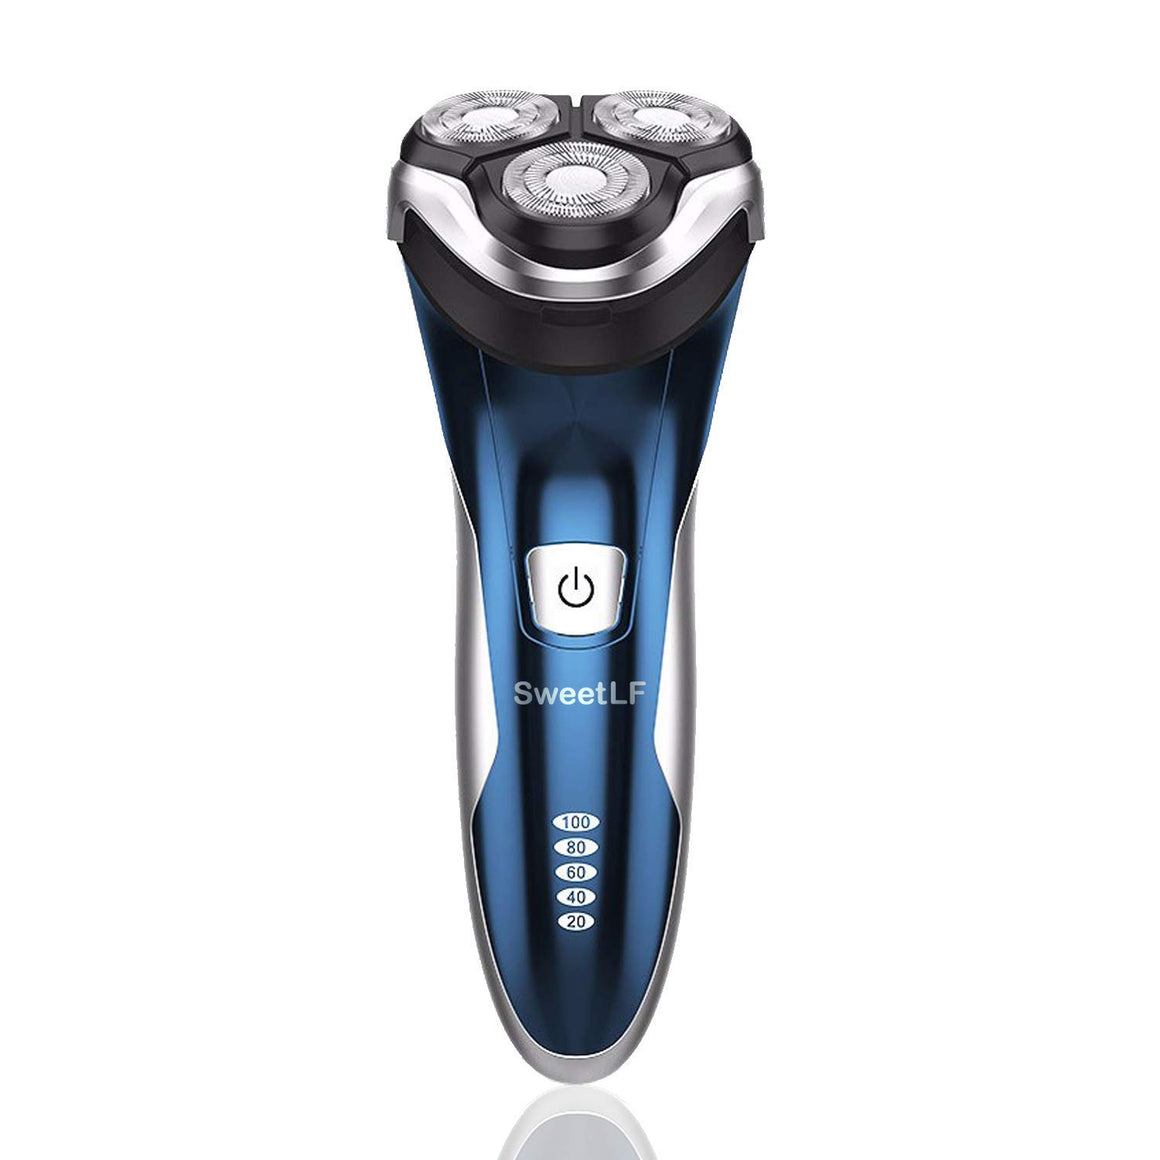 SweetLF 3D Rechargeable 100% Waterproof IPX7 Electric Shaver Wet & Dry Rotary Shavers